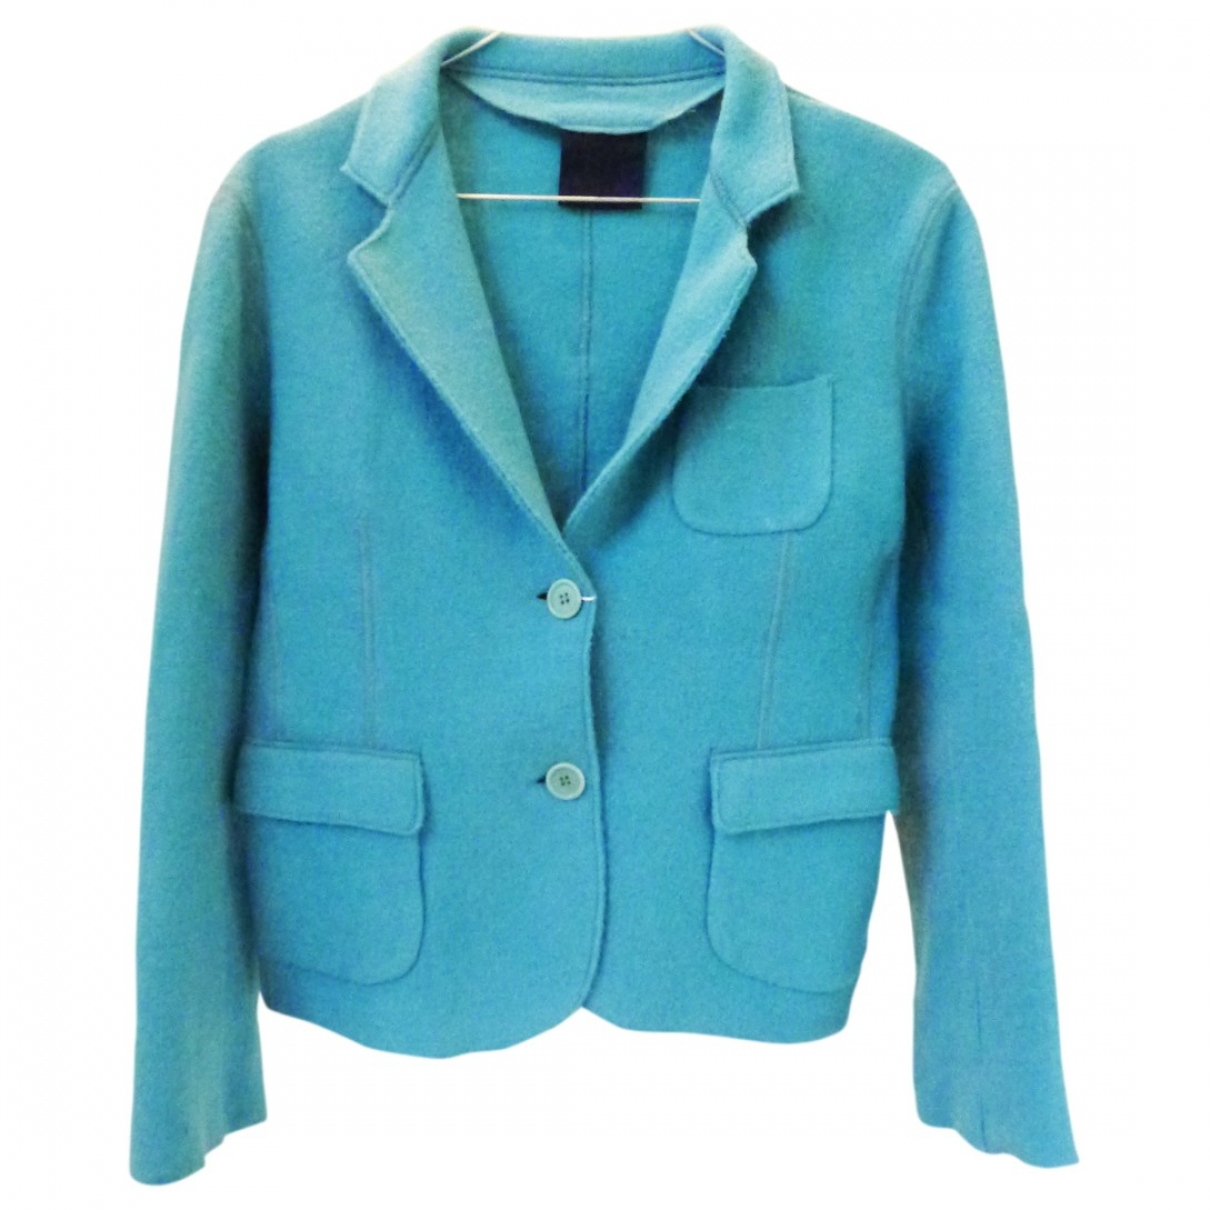 Aspesi \N Turquoise Wool jacket for Women 42 IT